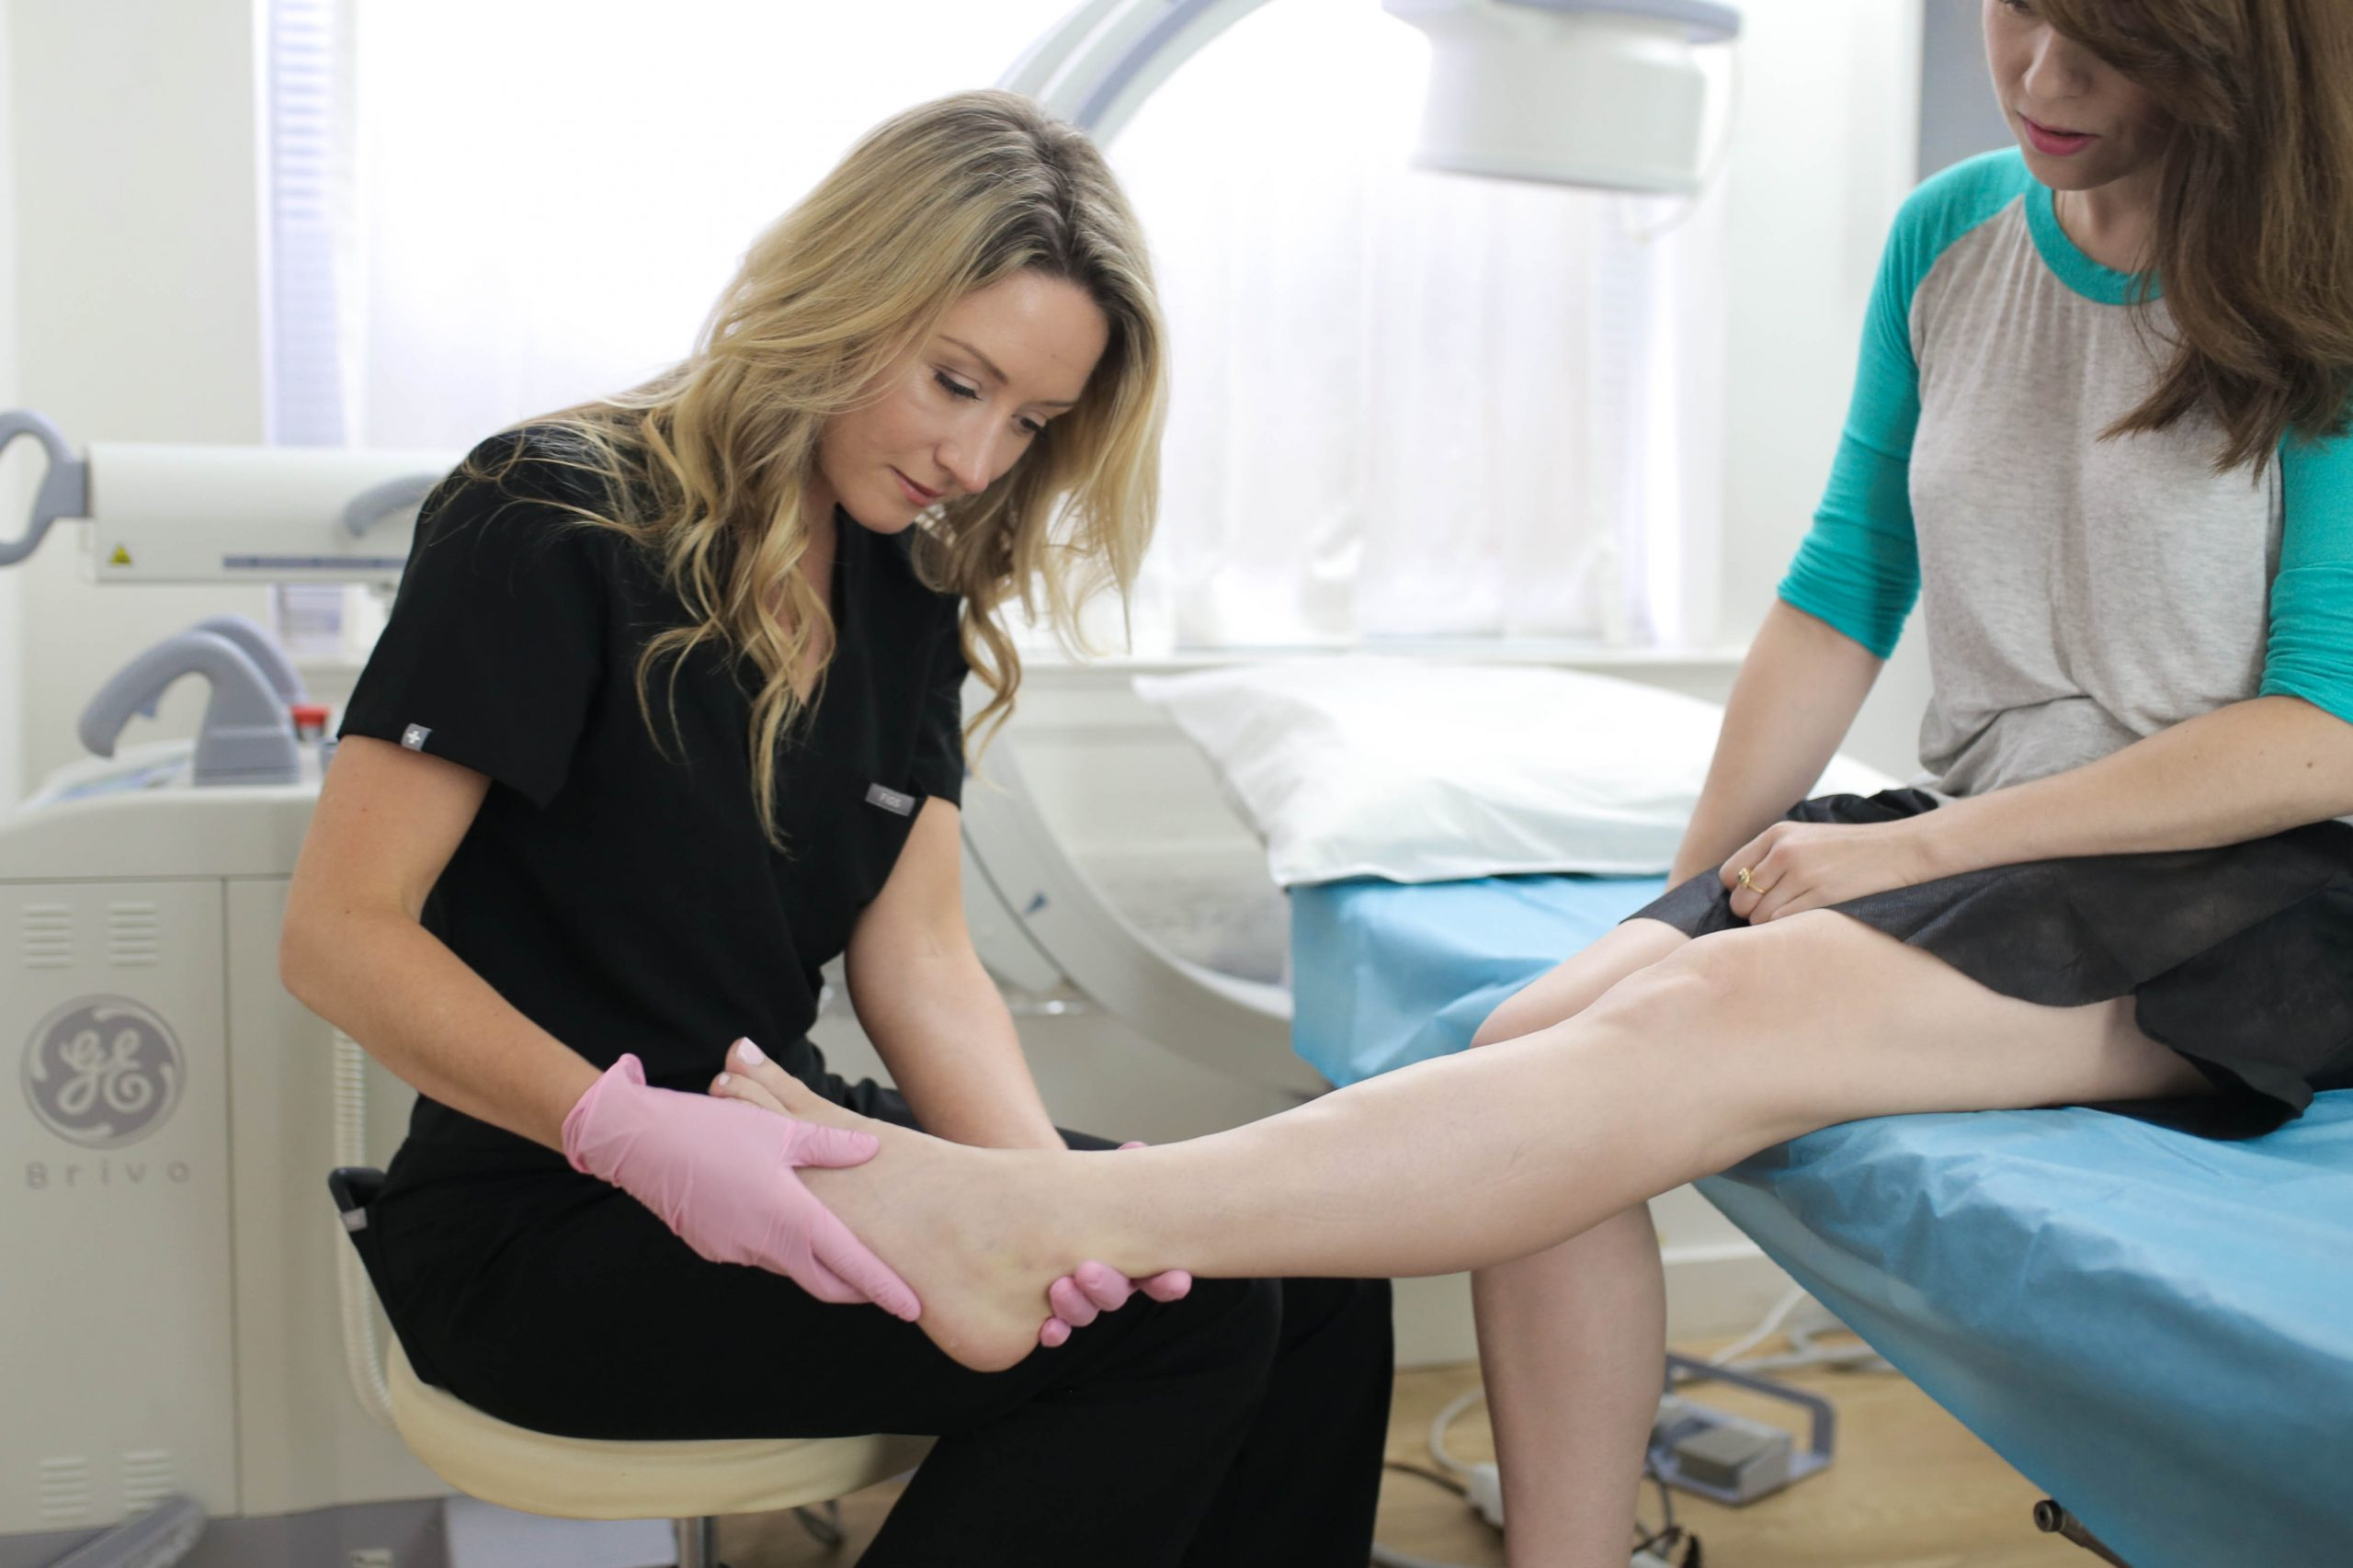 """Patients often ask, """"what's the best varicose vein treatment in NJ?"""" This article answers that question and provides more information on varicose veins and minimally invasive procedures."""